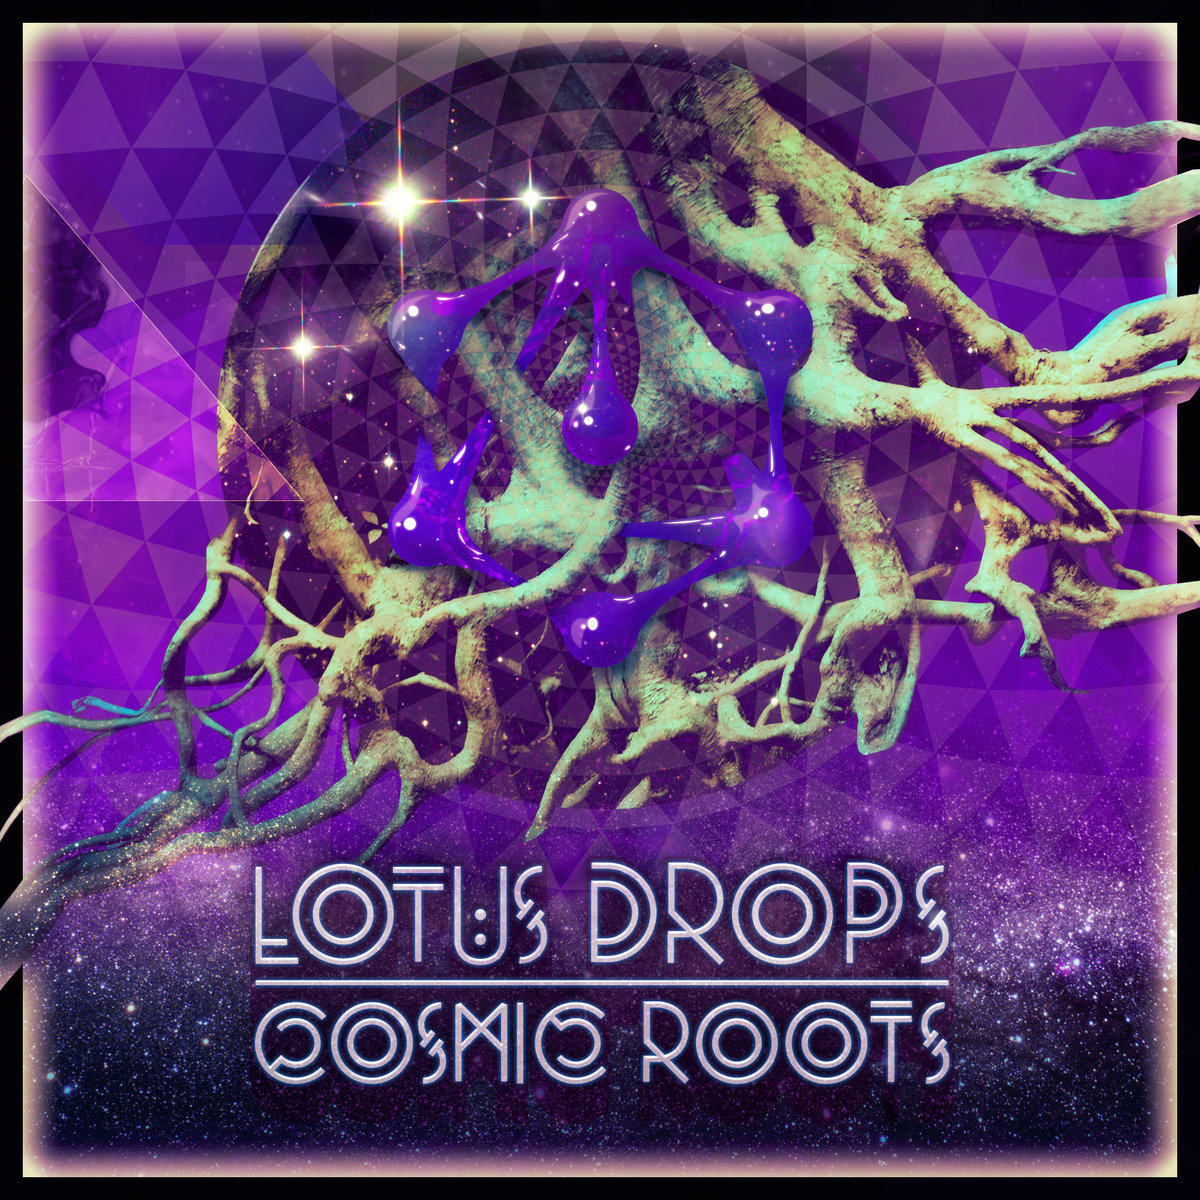 Lotus Drops - Triangle Season @ 'Cosmic Roots' album (electronic, dubstep)